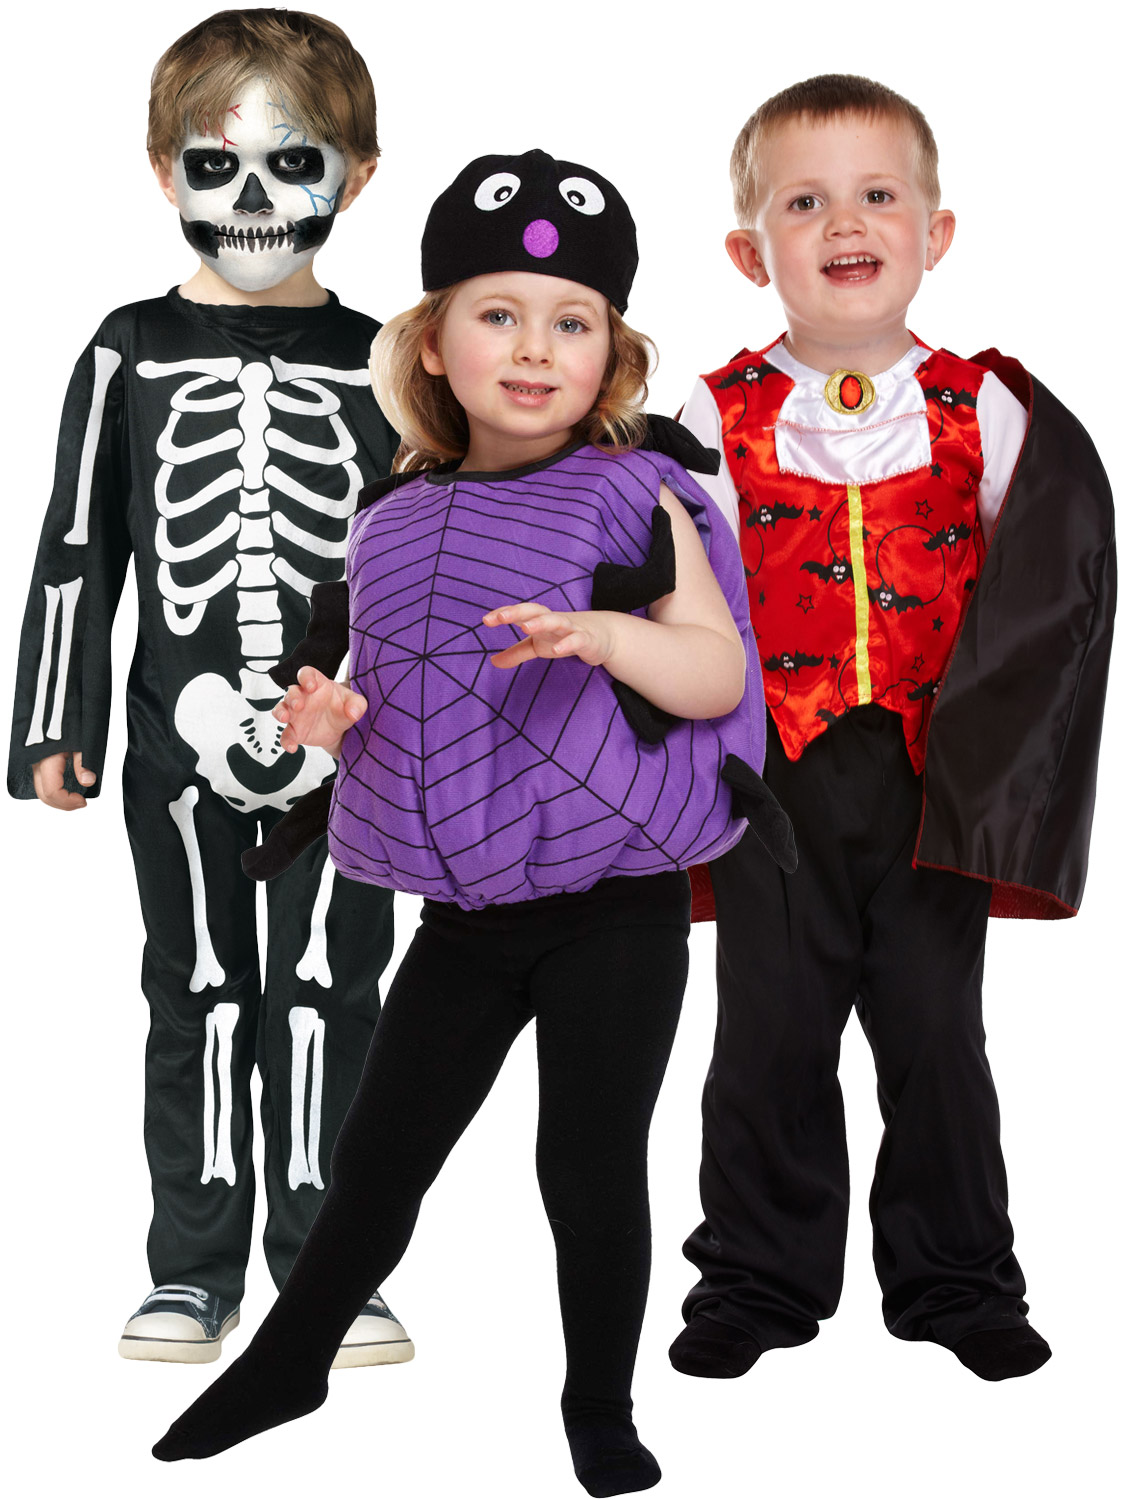 Halloween Costumes For Kidsboys.Details About Age 2 3 4 Toddler Halloween Costume Vampire Skeleton Fancy Dress Kids Boys Girls